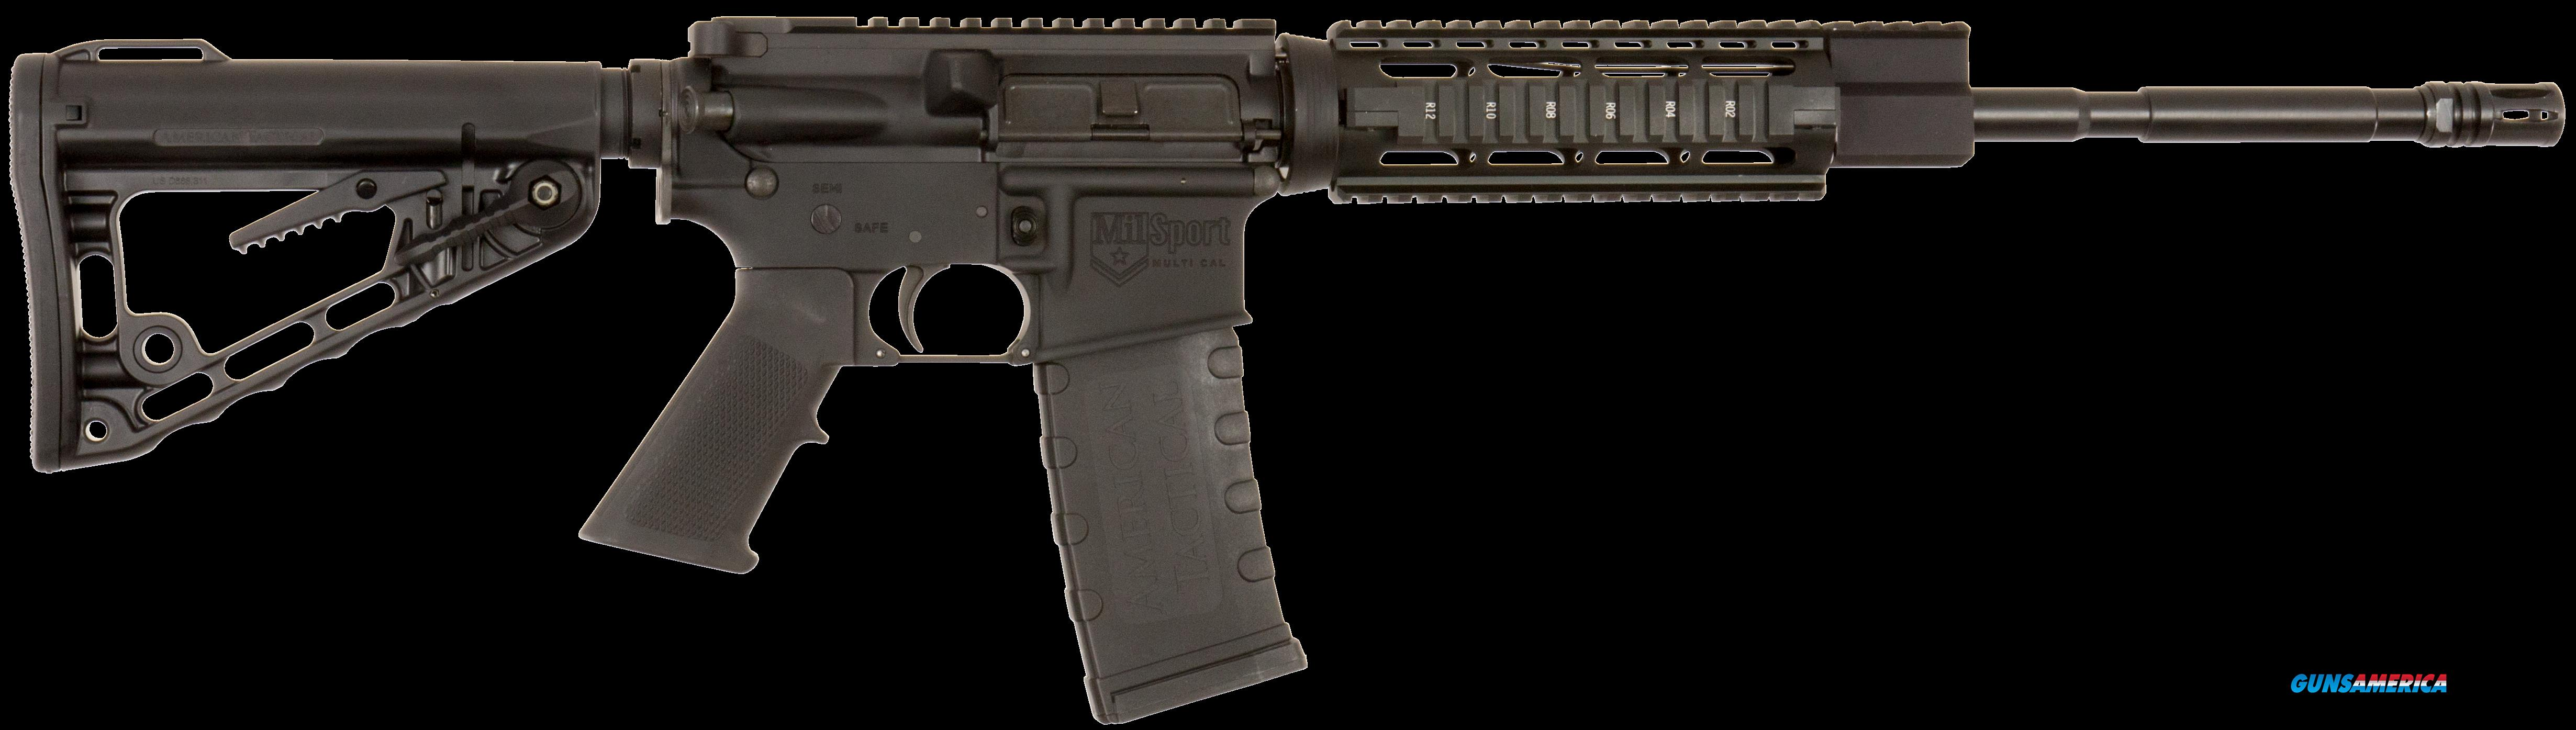 "ATI G15MSQ Mil-Sport M4 Semi-Automatic 223 Remington/5.56 NATO 16"" 30+1 6-Position Blk Stk Blk  Guns > Rifles > A Misc Rifles"